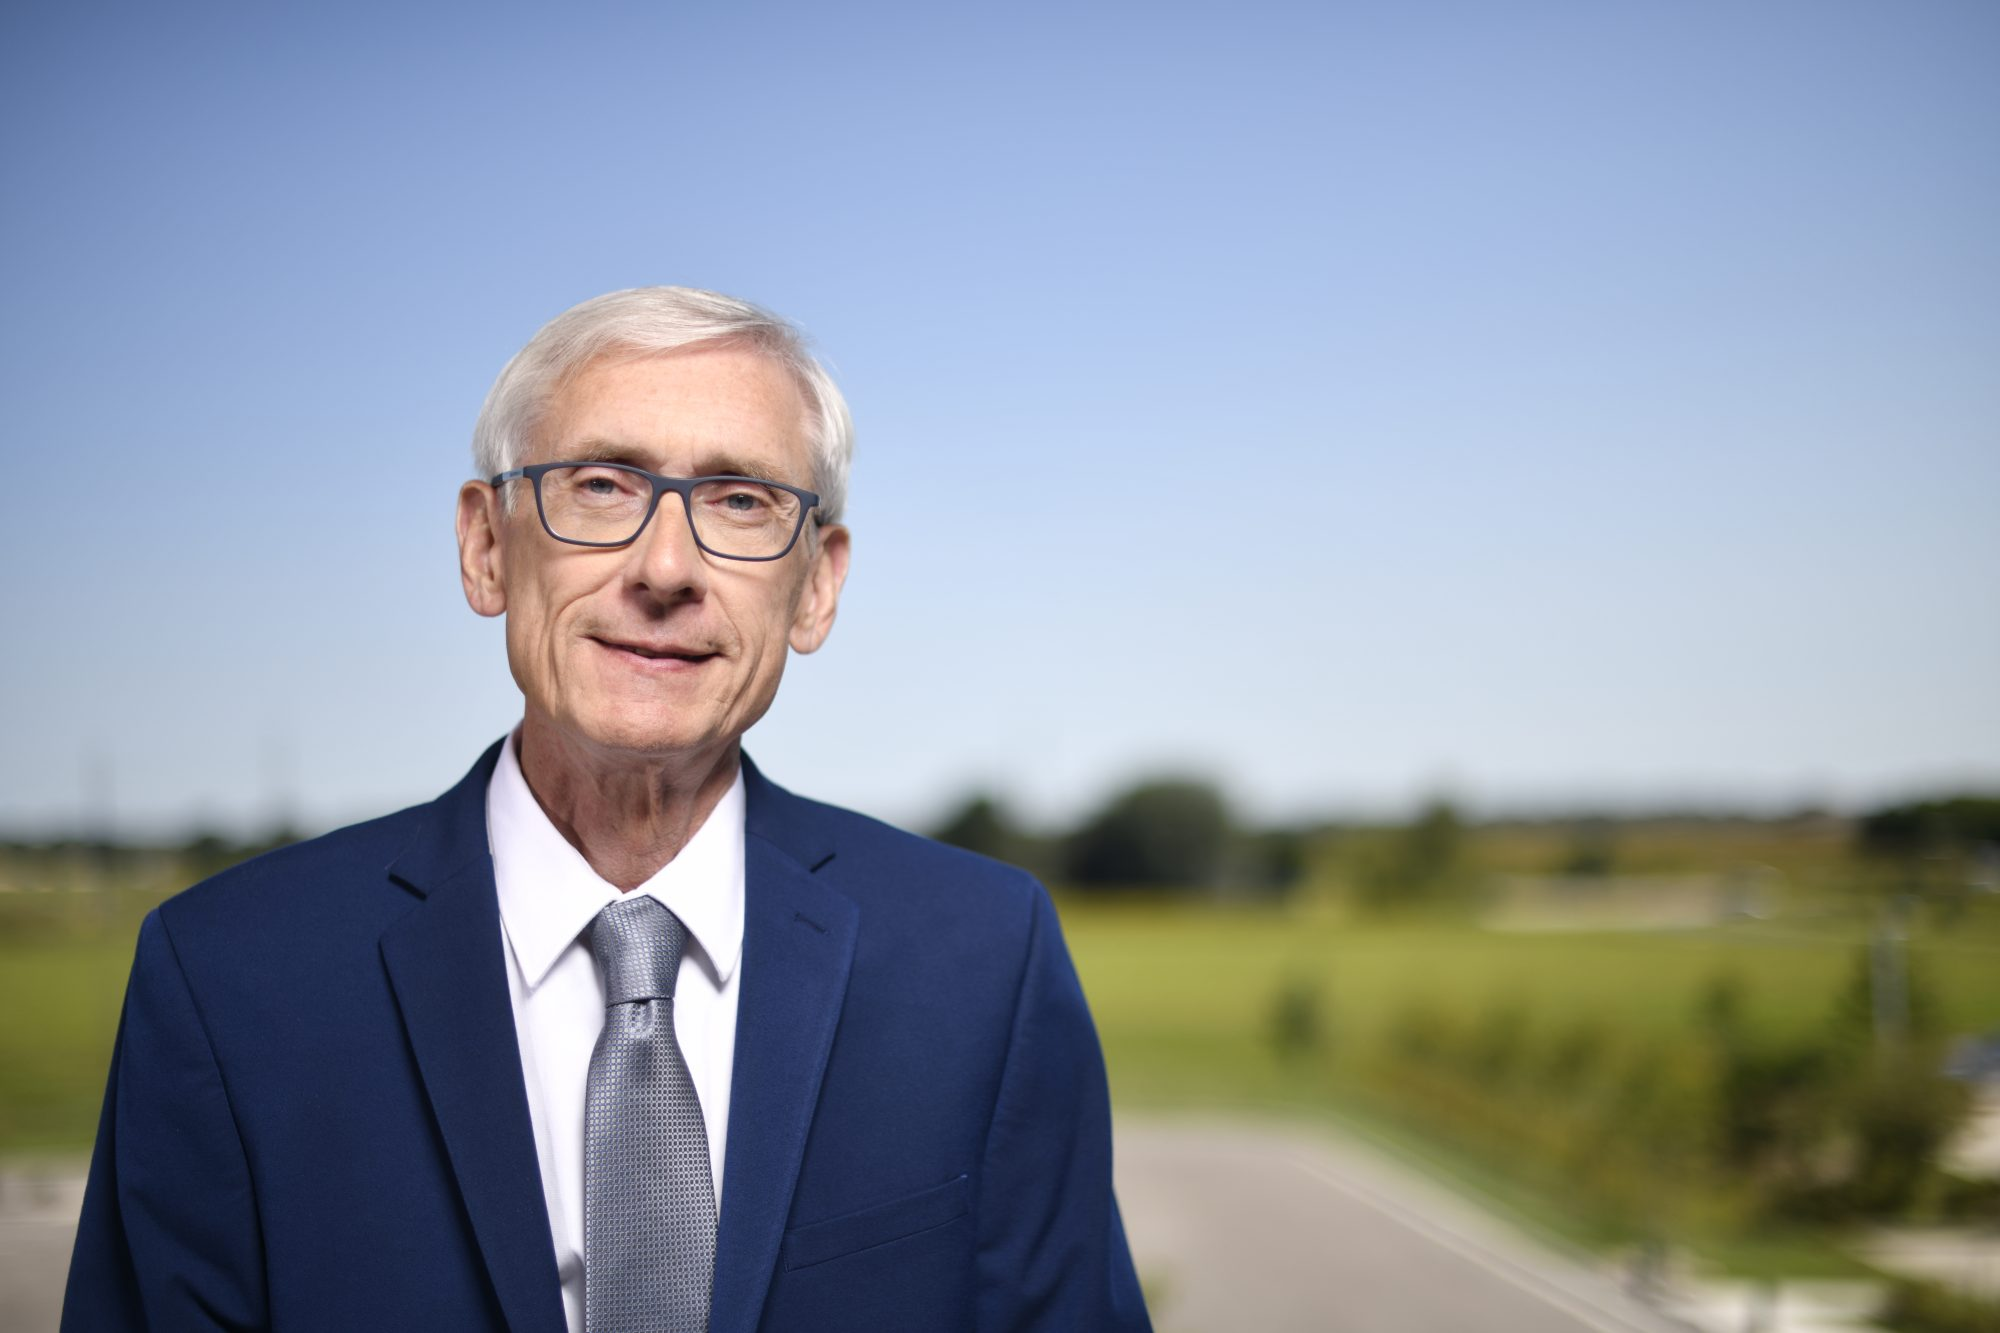 Gov. Evers: Even During COVID-19, America's Dairyland Celebrates June Dairy Month